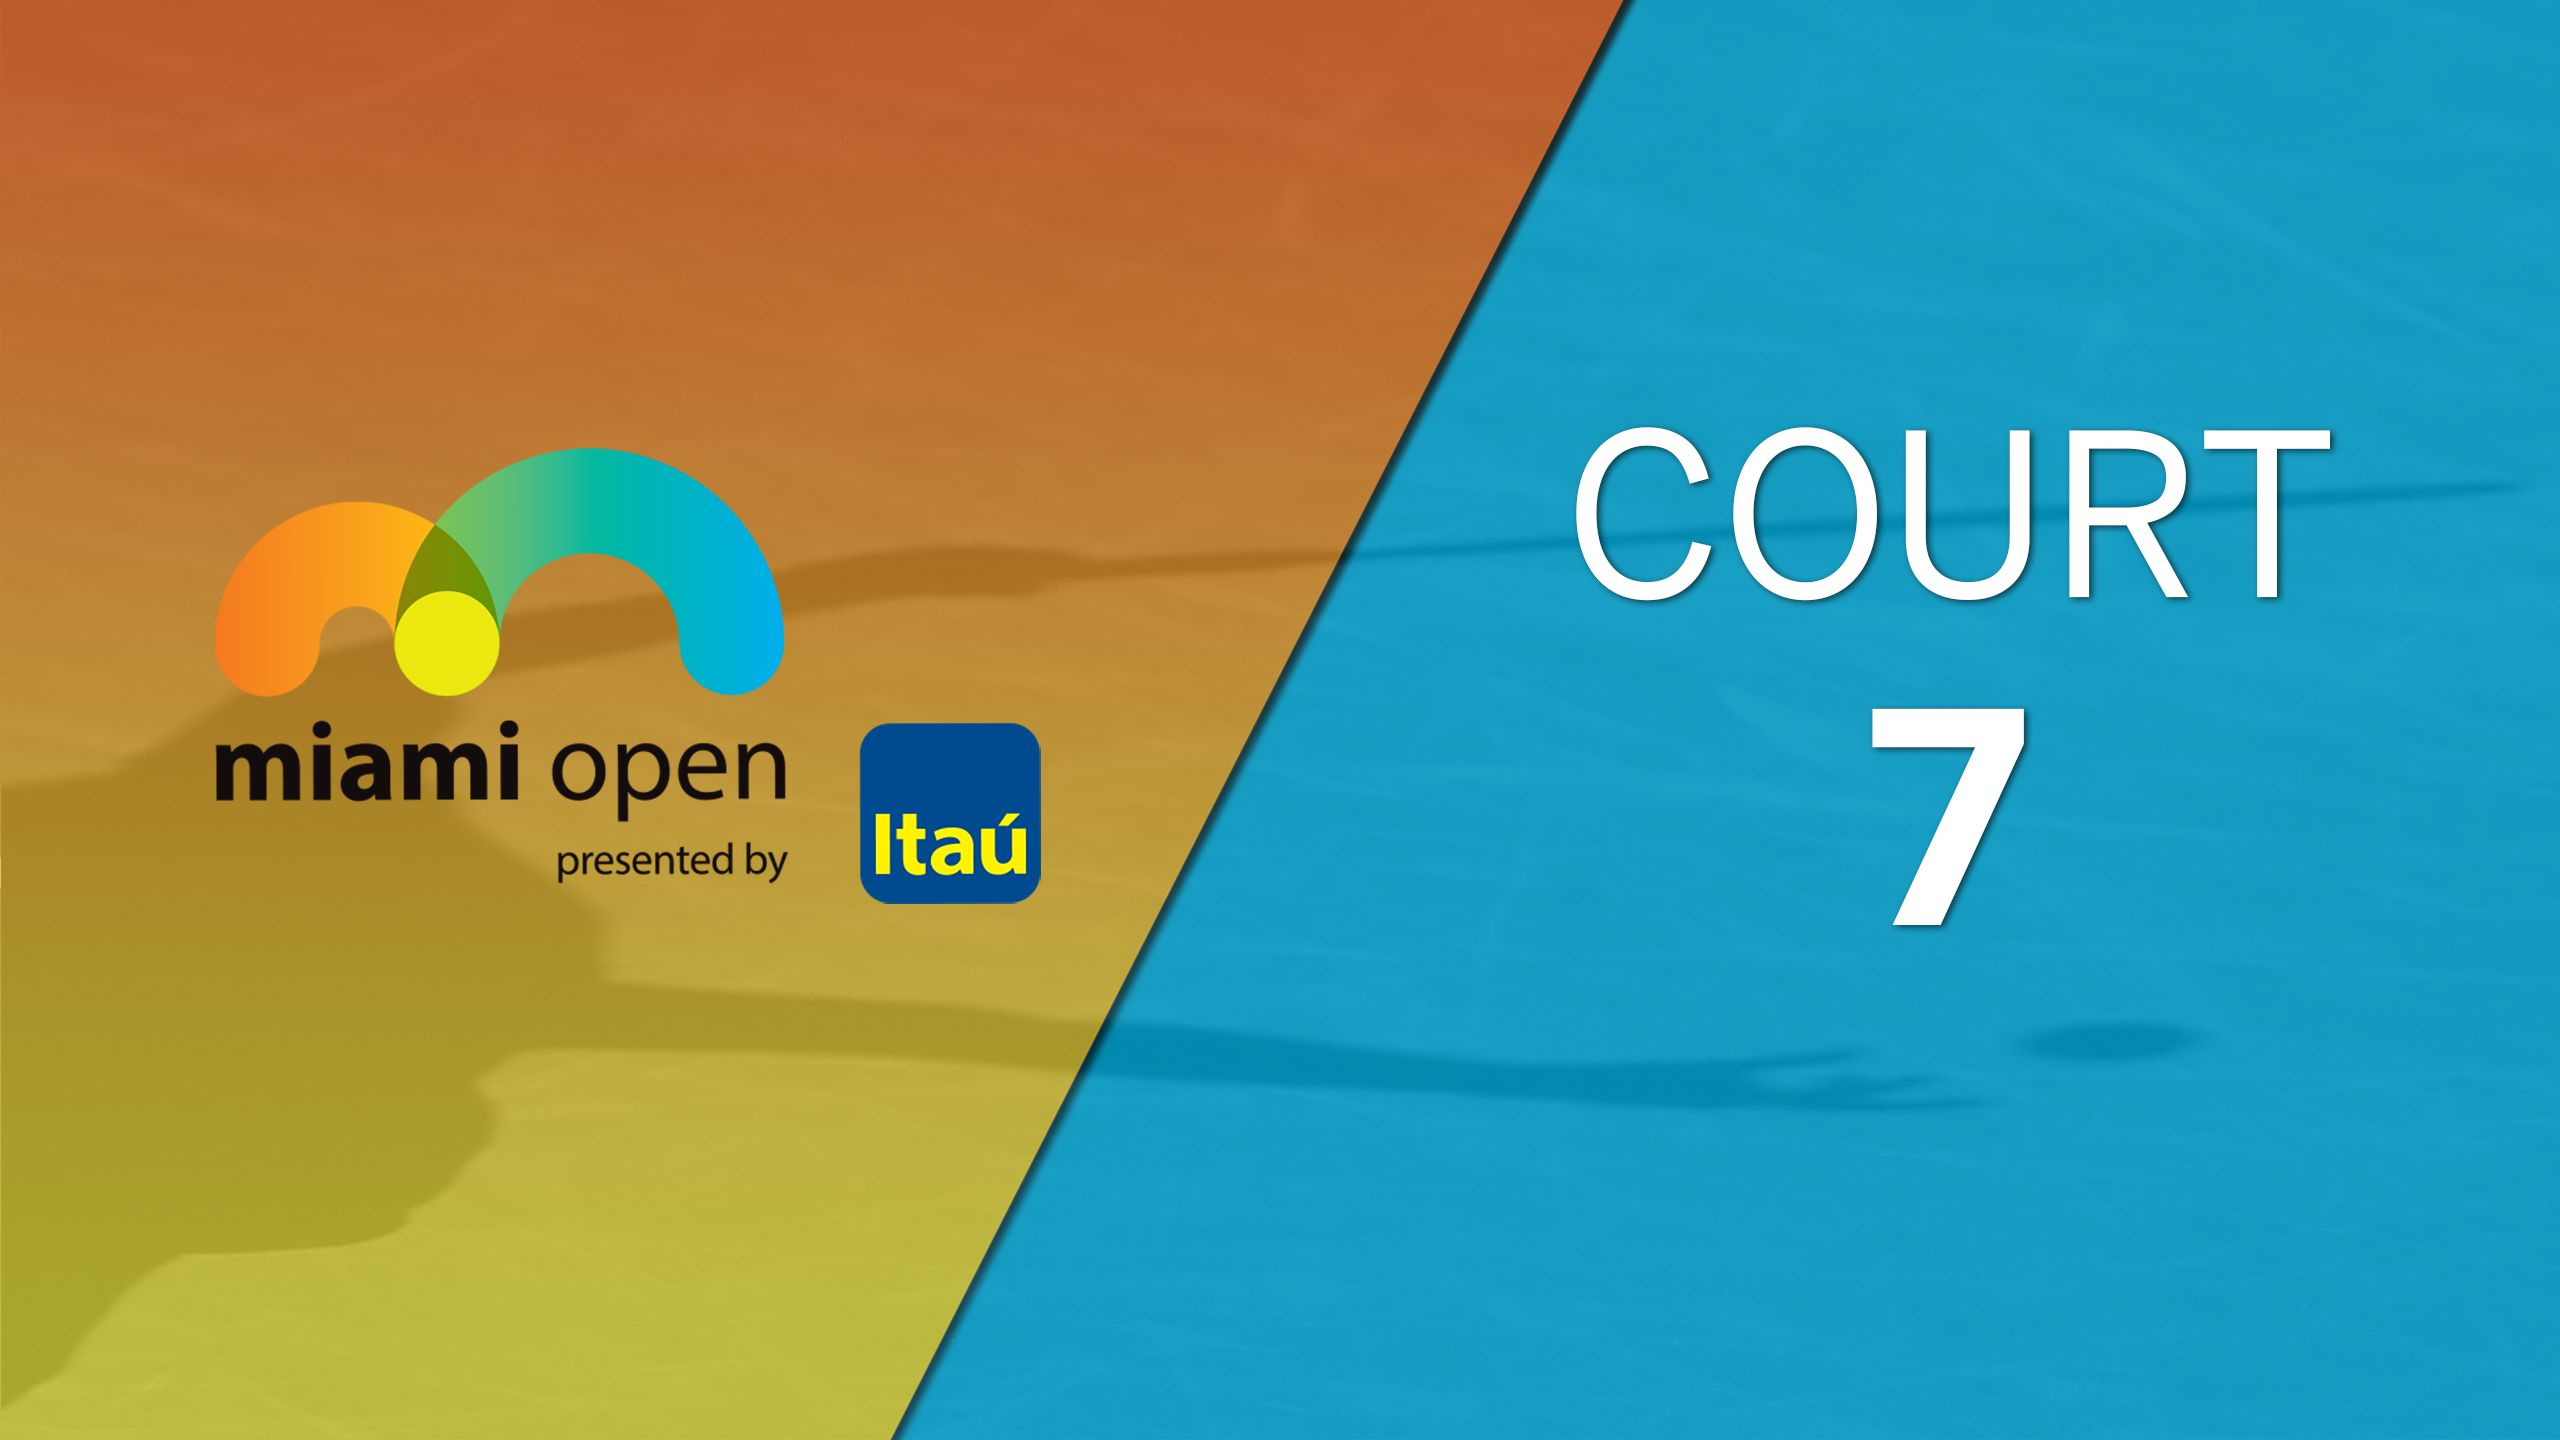 Miami Open - Court 7 (First Round)